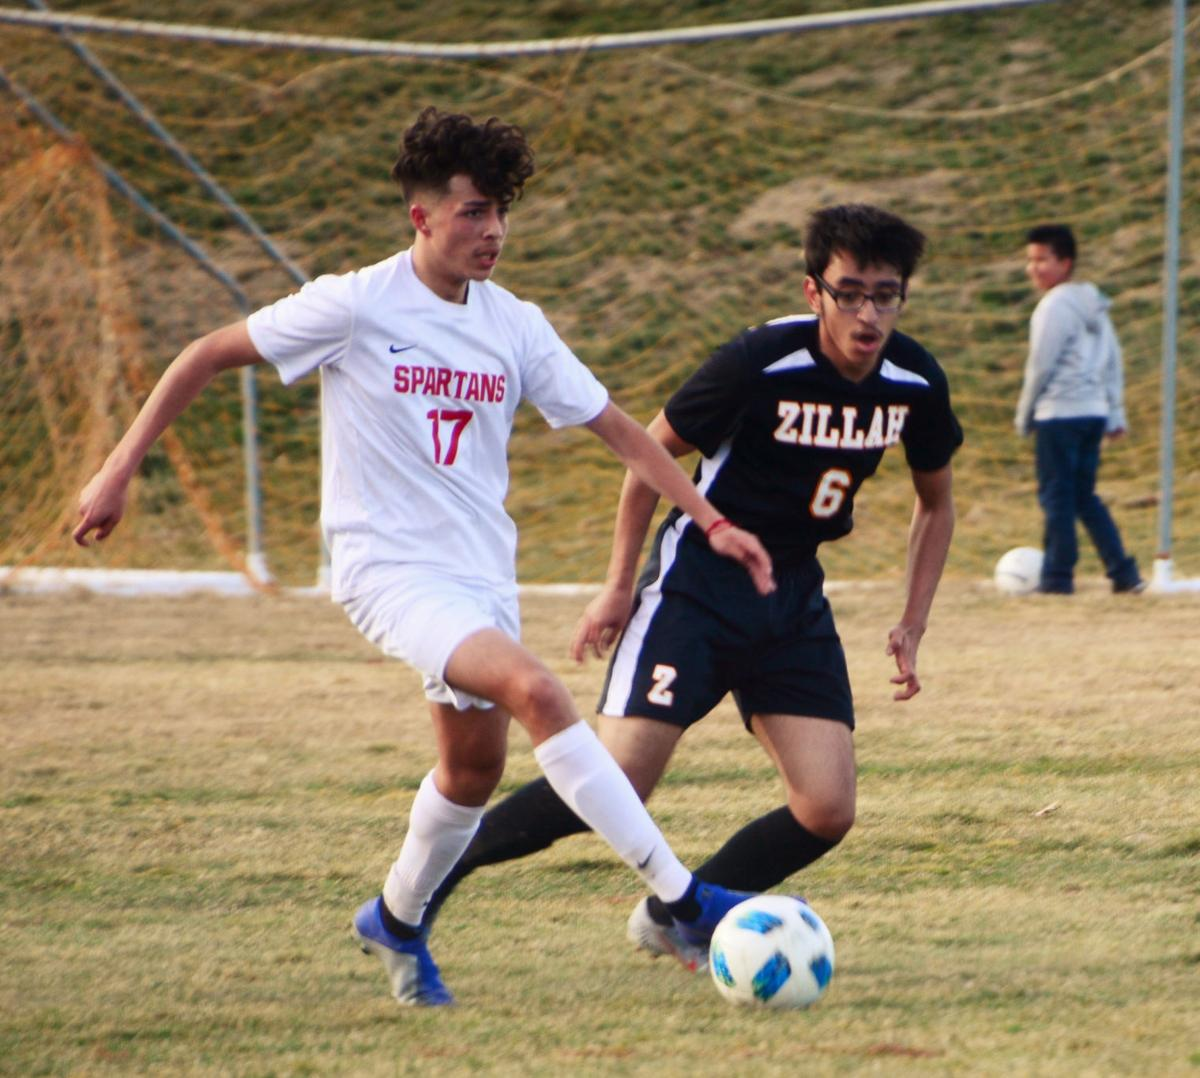 Granger Spartans blank young Zillah Leopards